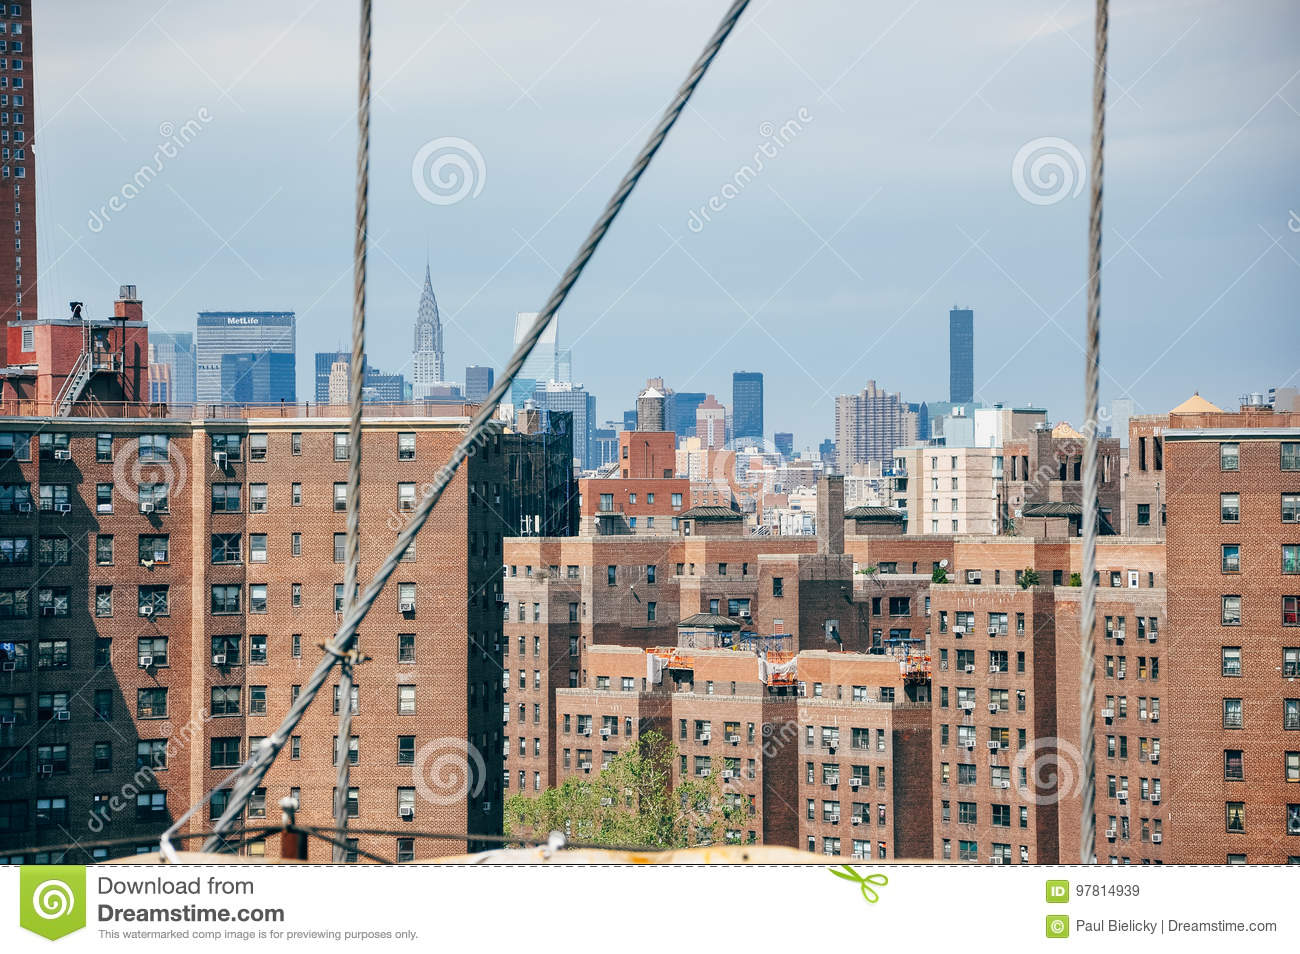 Manhattan city skyline view.